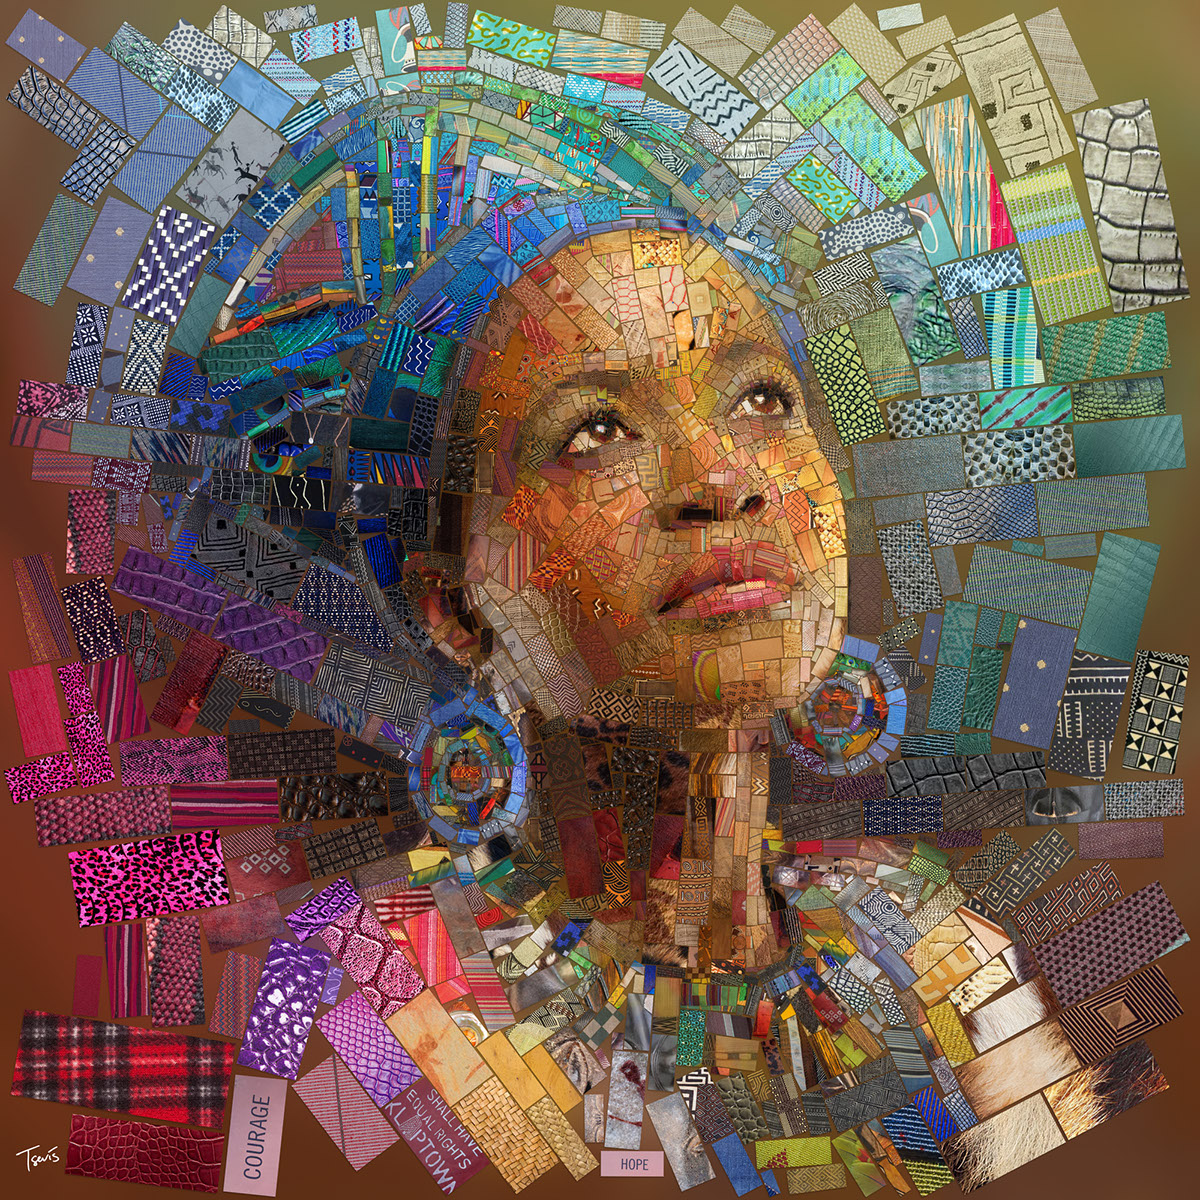 Splendid Mosaic Illustrations by Charis Tsevis